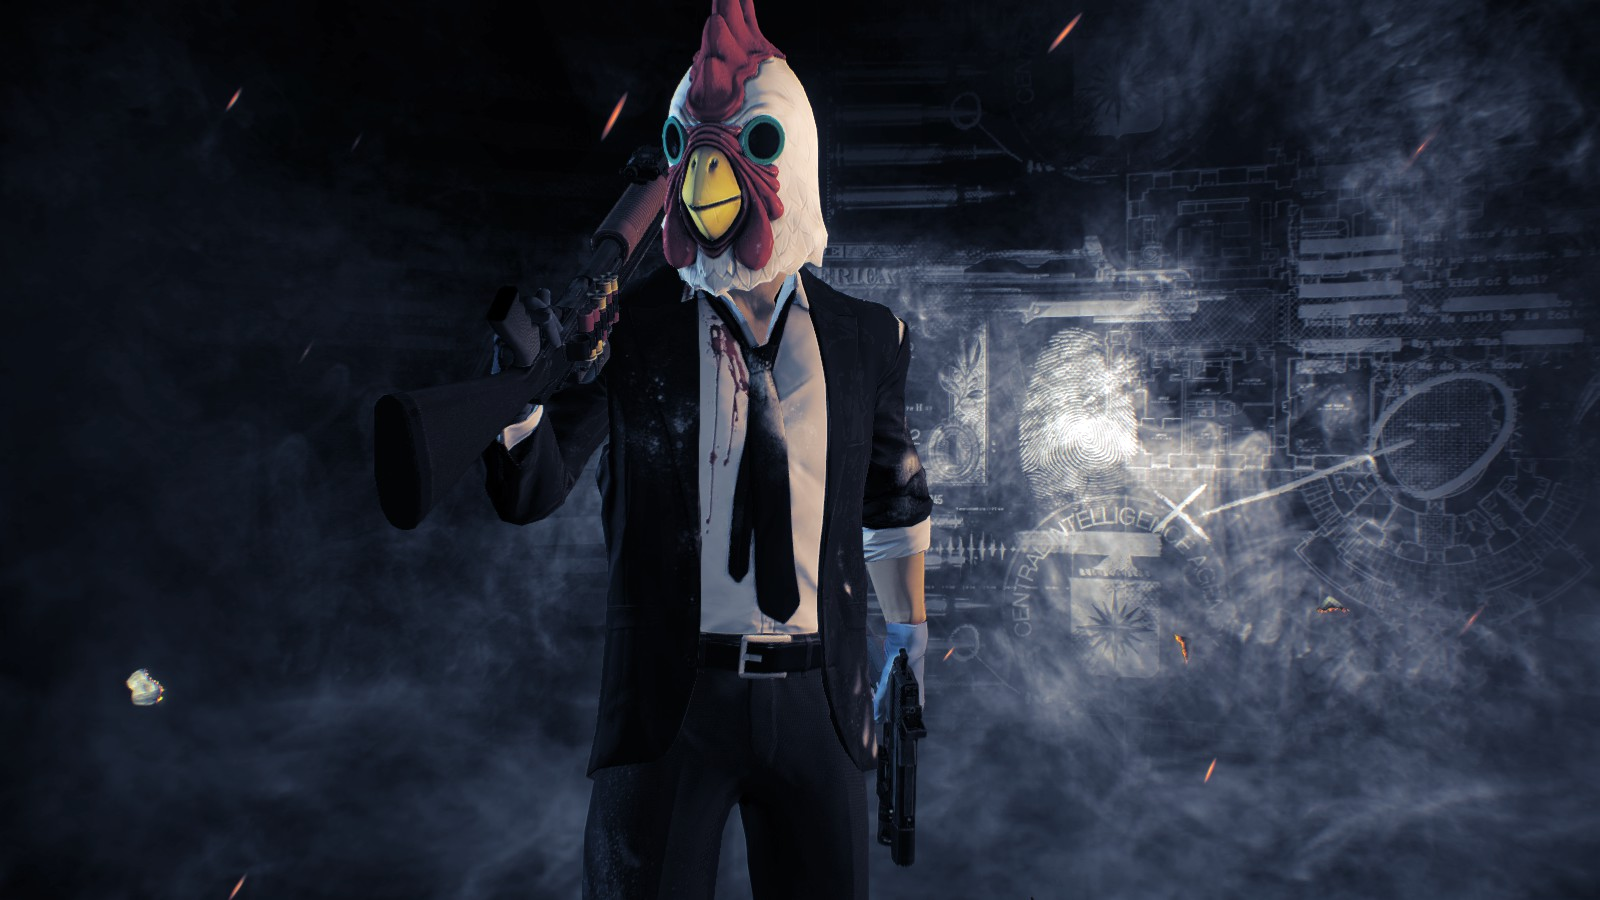 Fashion Richard_02 - Payday 2